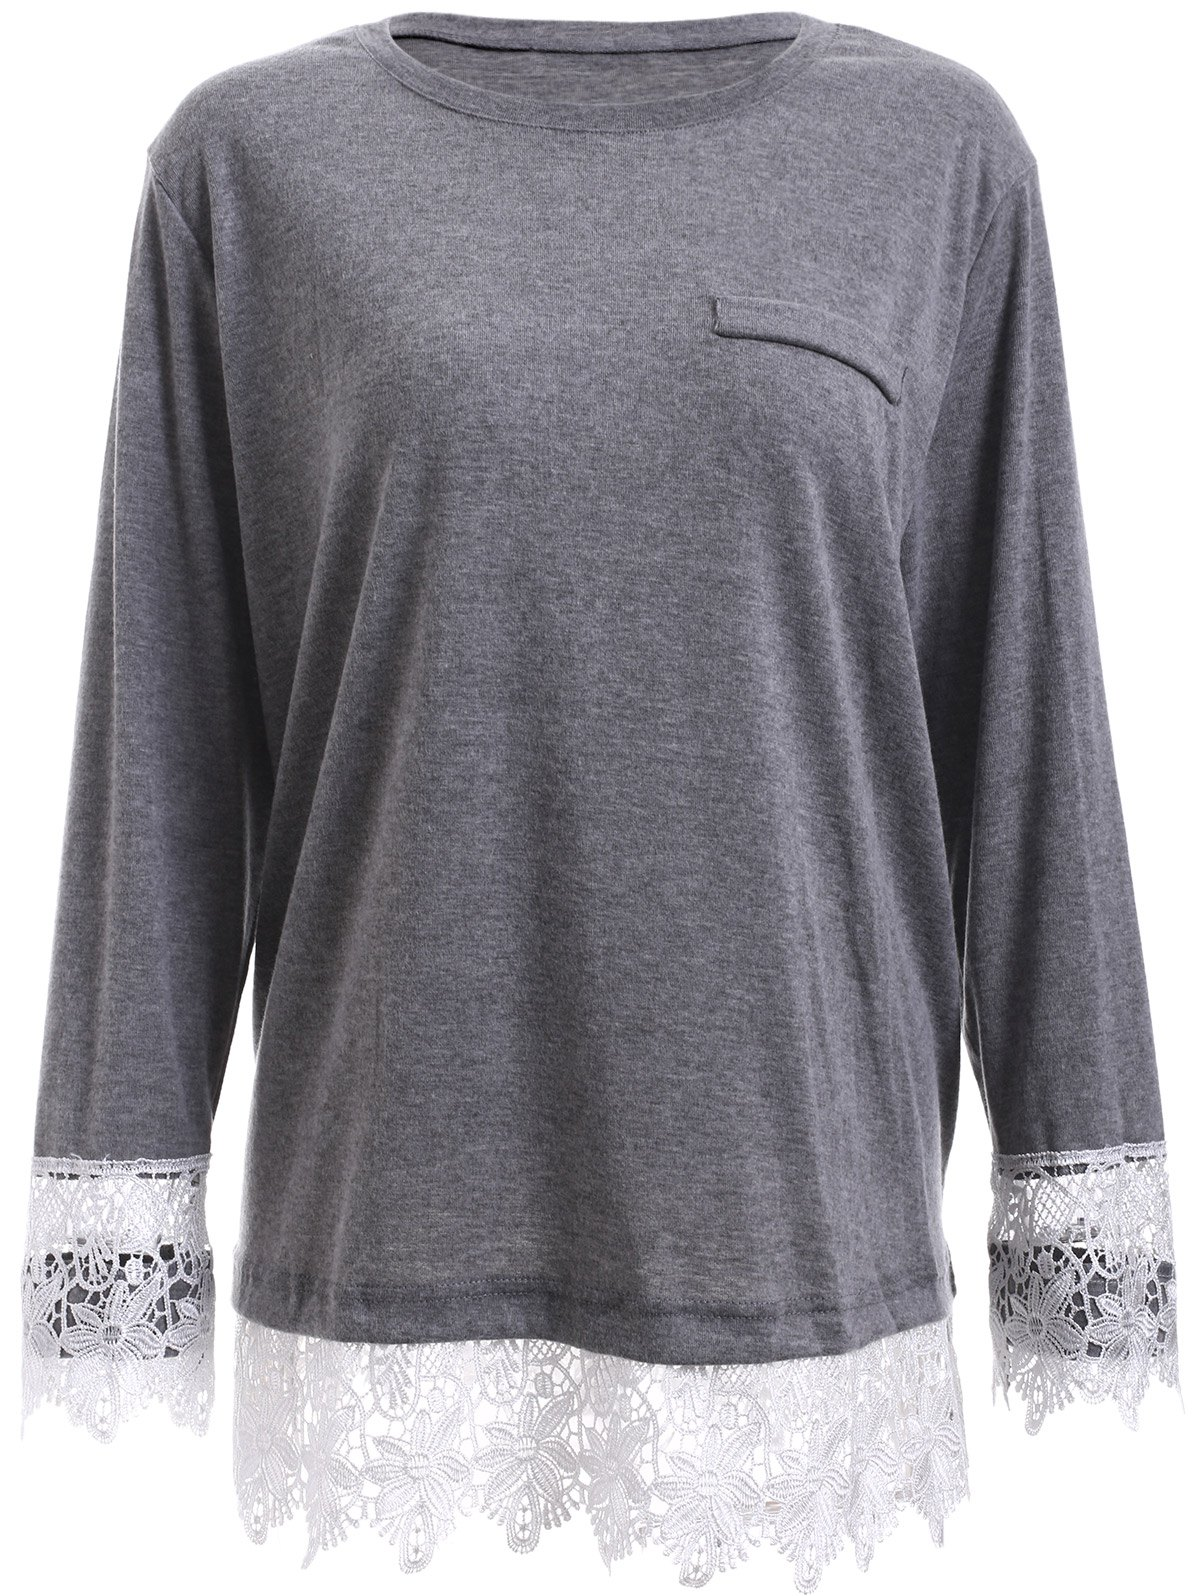 Oversized Long Sleeve Lace Splicing T-Shirt - GRAY 5XL